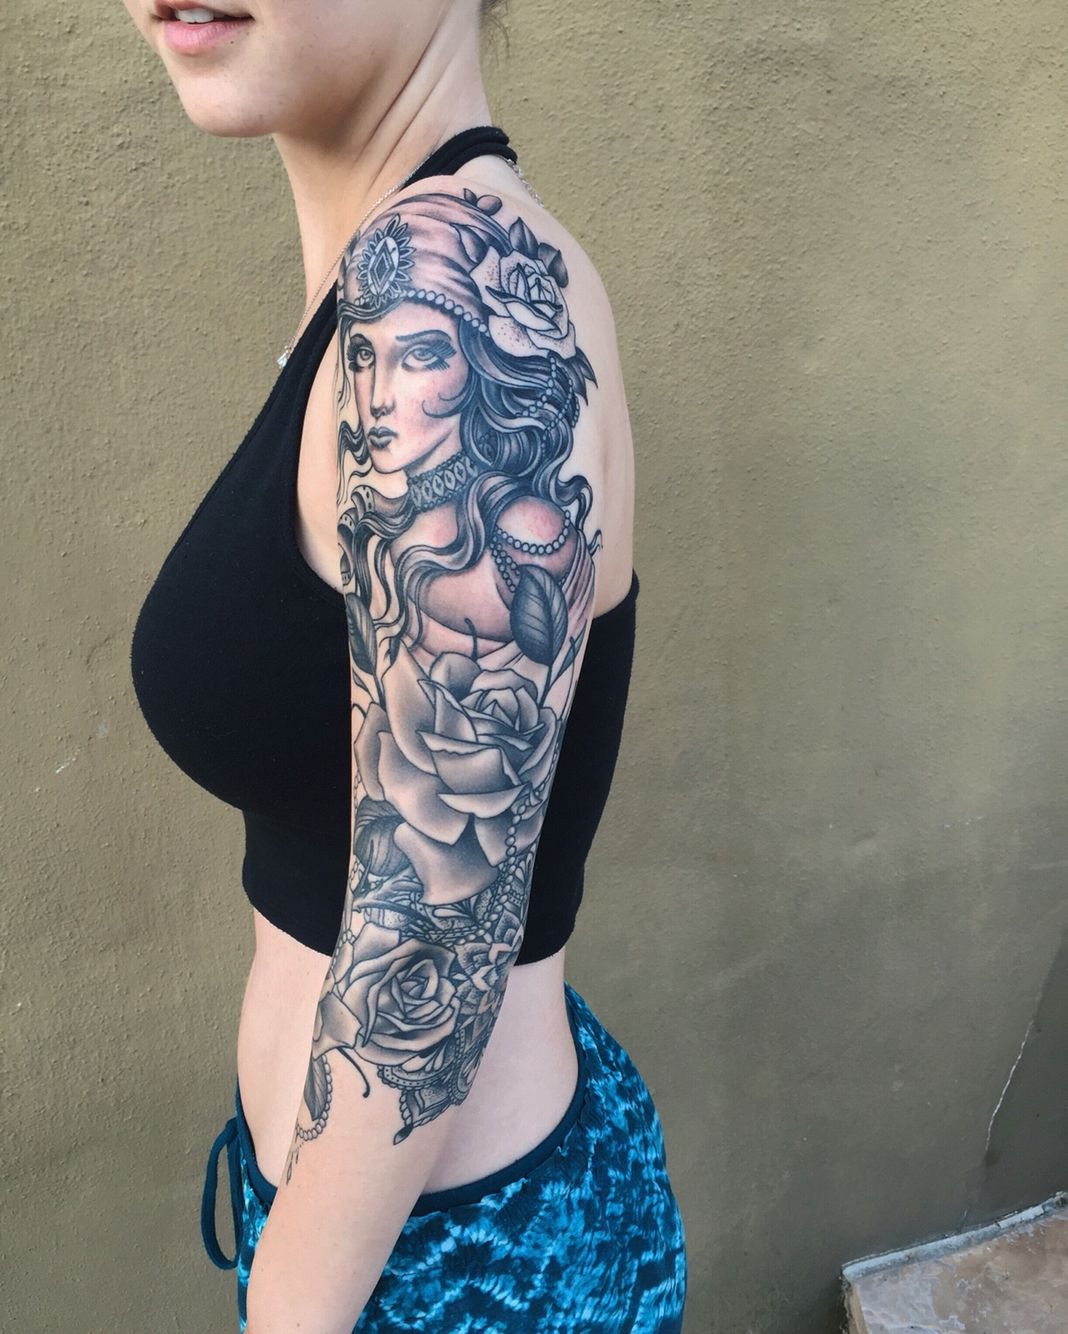 Half Sleeve Gypsy Tattoo With Roses And Mandala Done By